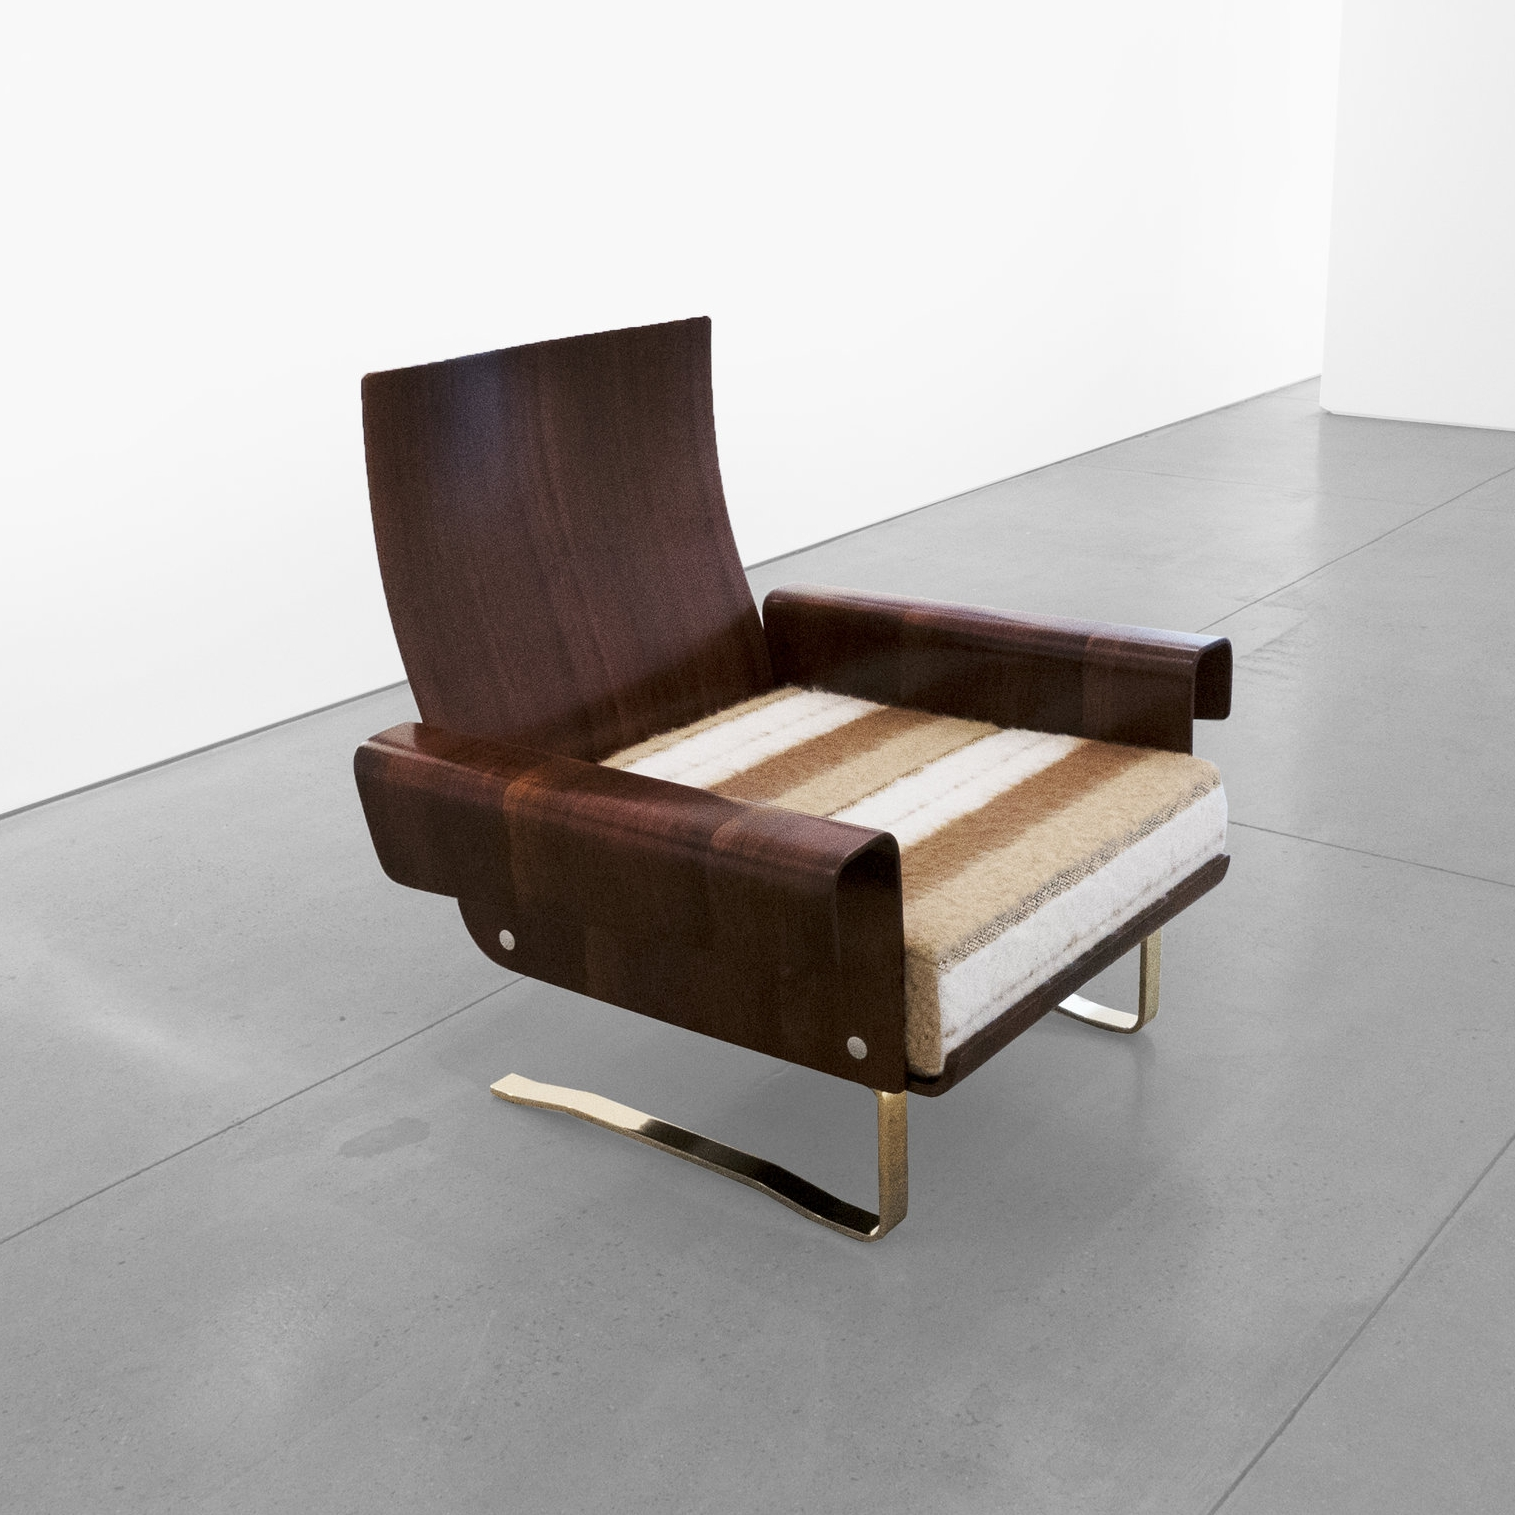 mid-century cantilever lounge chair 20th centiury …